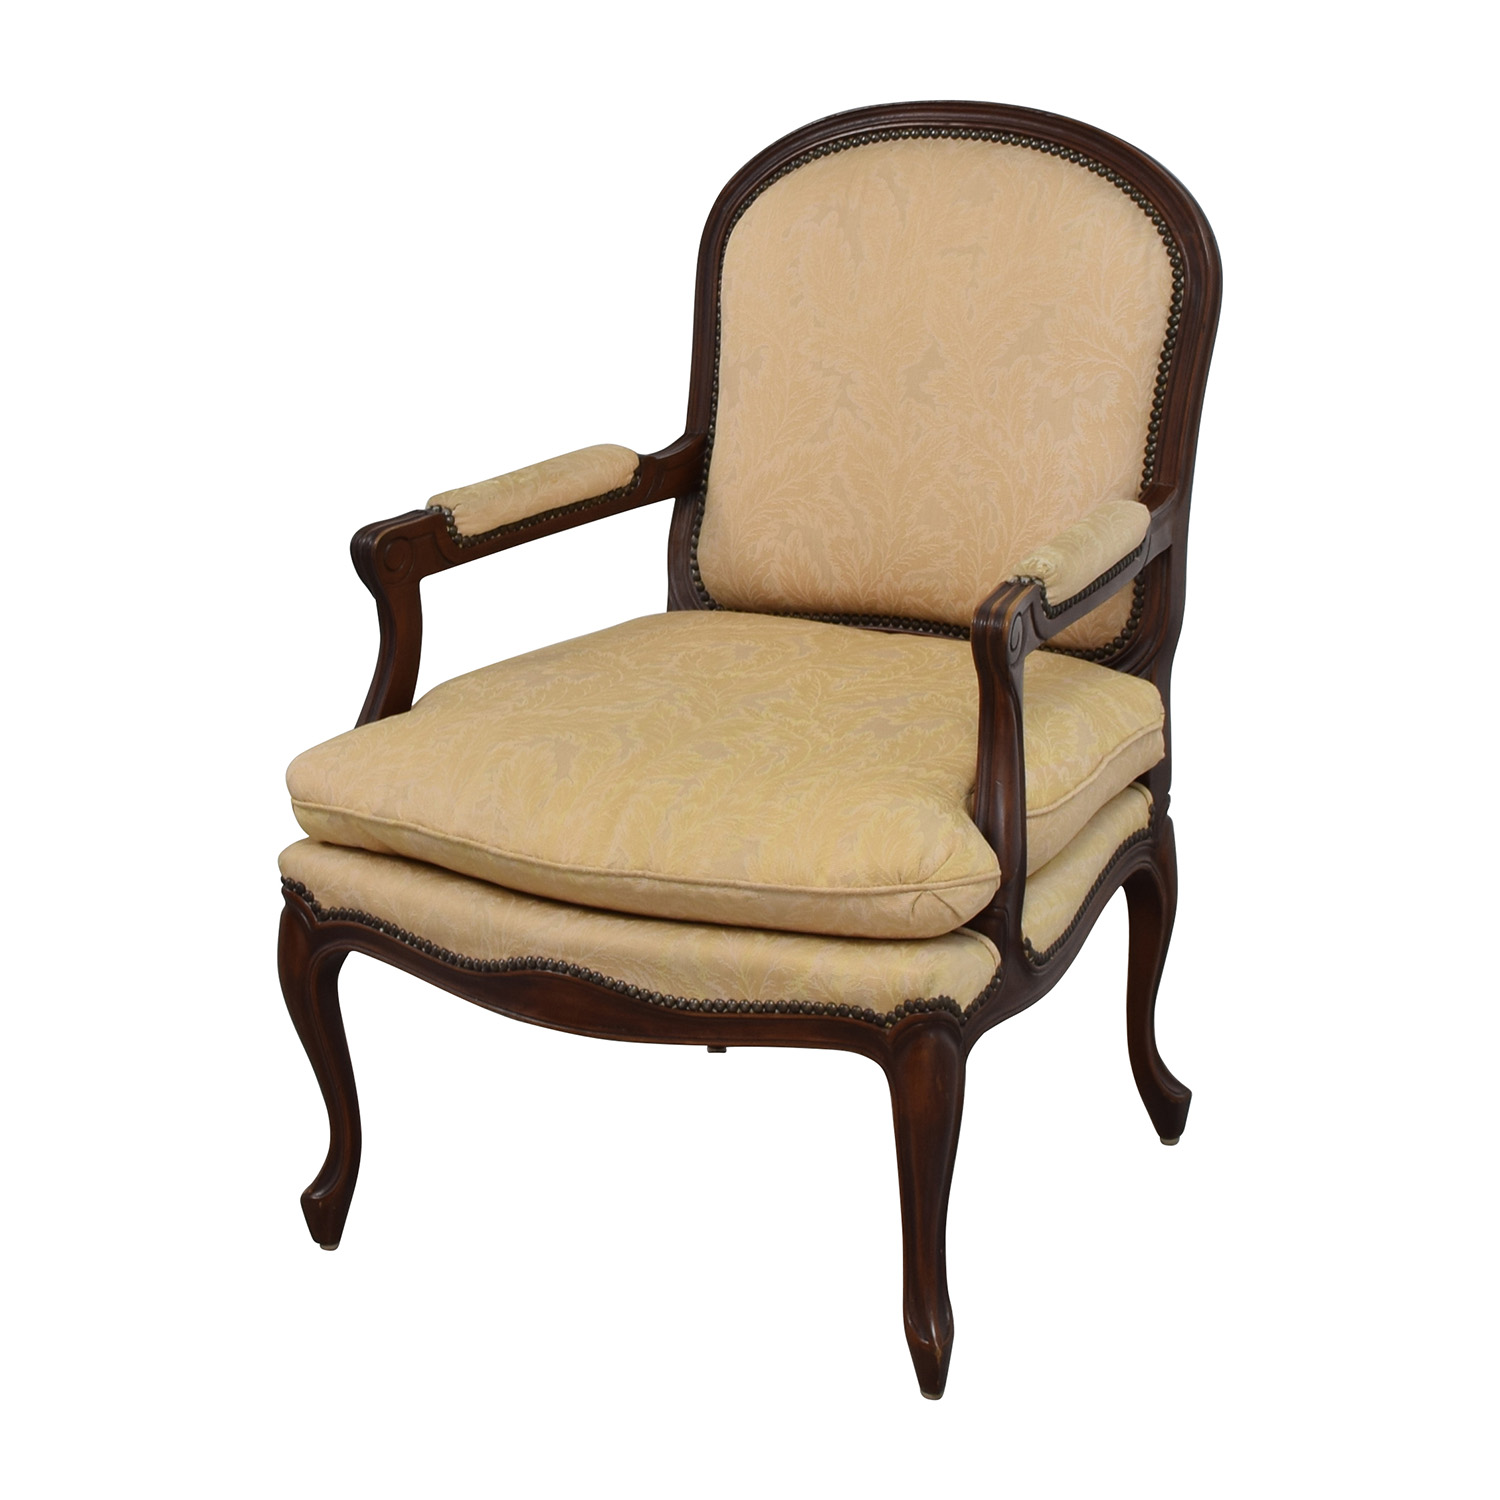 Floral Chair 75 Off Gold Floral Jacquard Upholstered Studded Accent